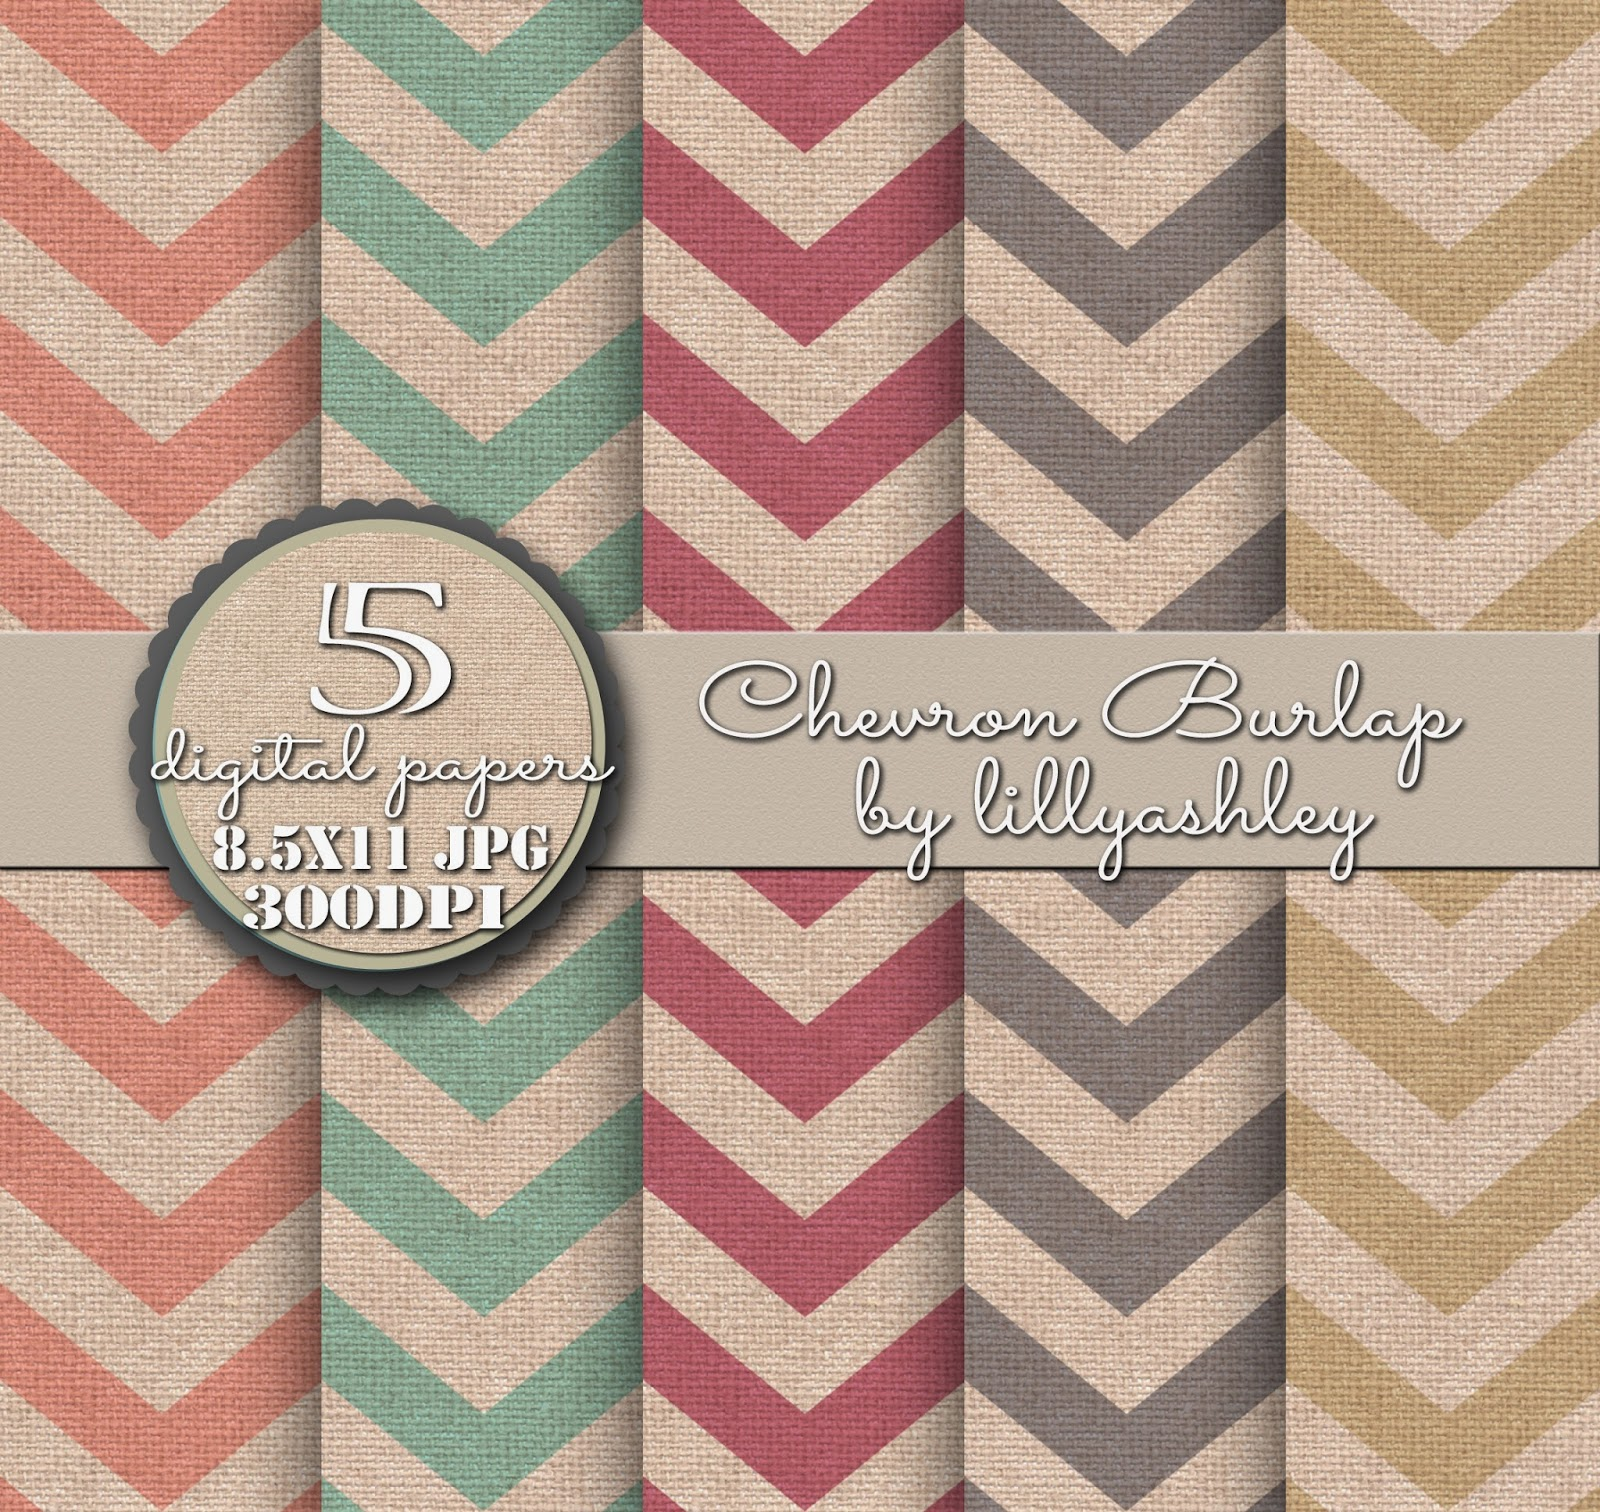 https://www.etsy.com/listing/191351880/85x11-chevron-burlap-color-pack-of-5?ref=shop_home_active_5